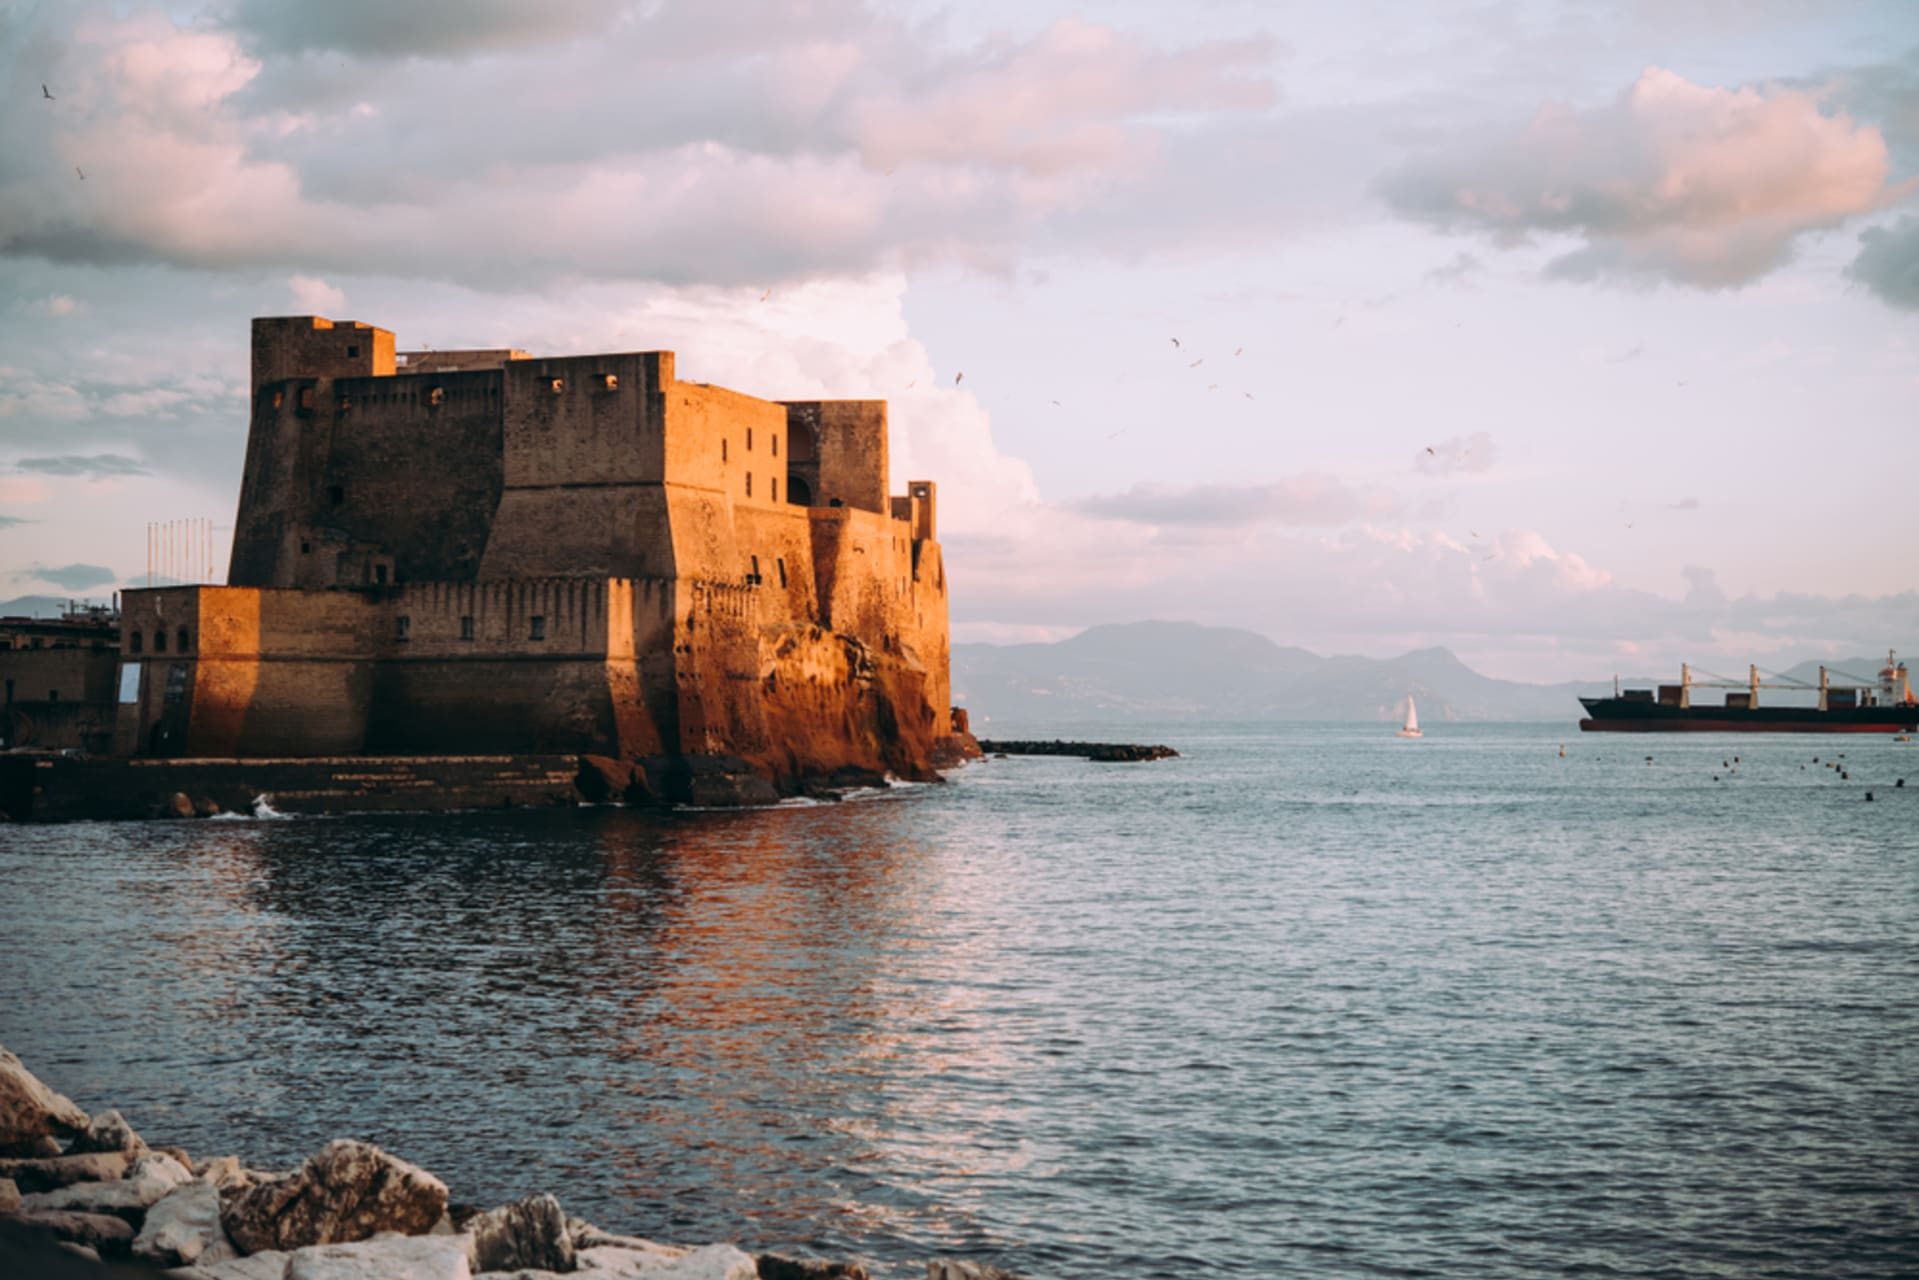 Naples - Naples Dolce Vita: Liberty style, Riviera, Royal gardens and Castle